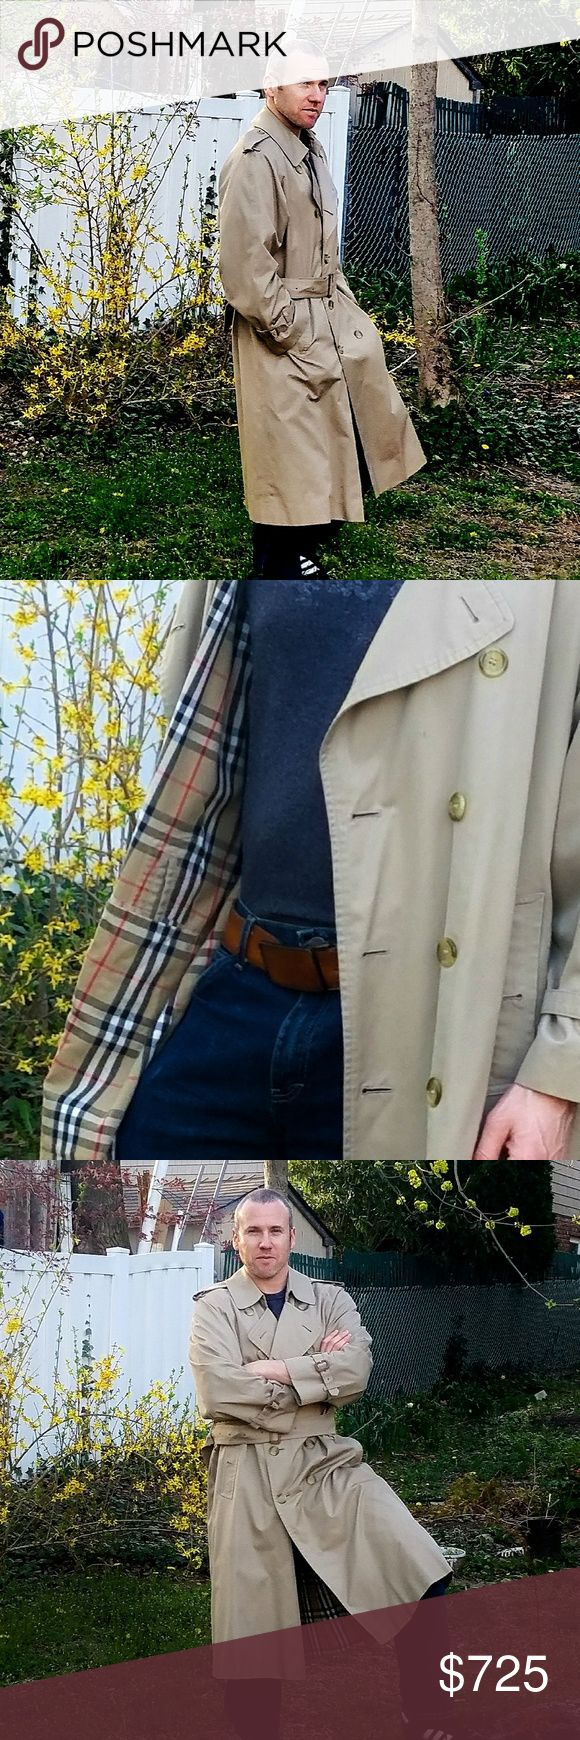 Vintage Prorsum Burberry Trench  Coat-40 Vintage Burberry Prorsum Trench Coat Jacket Men Size 40 Regular. In?excellent vintage condition with minimal signs of use.? Men's coat, but can be worn by women as well. Burberry Jackets & Coats Trench Coats